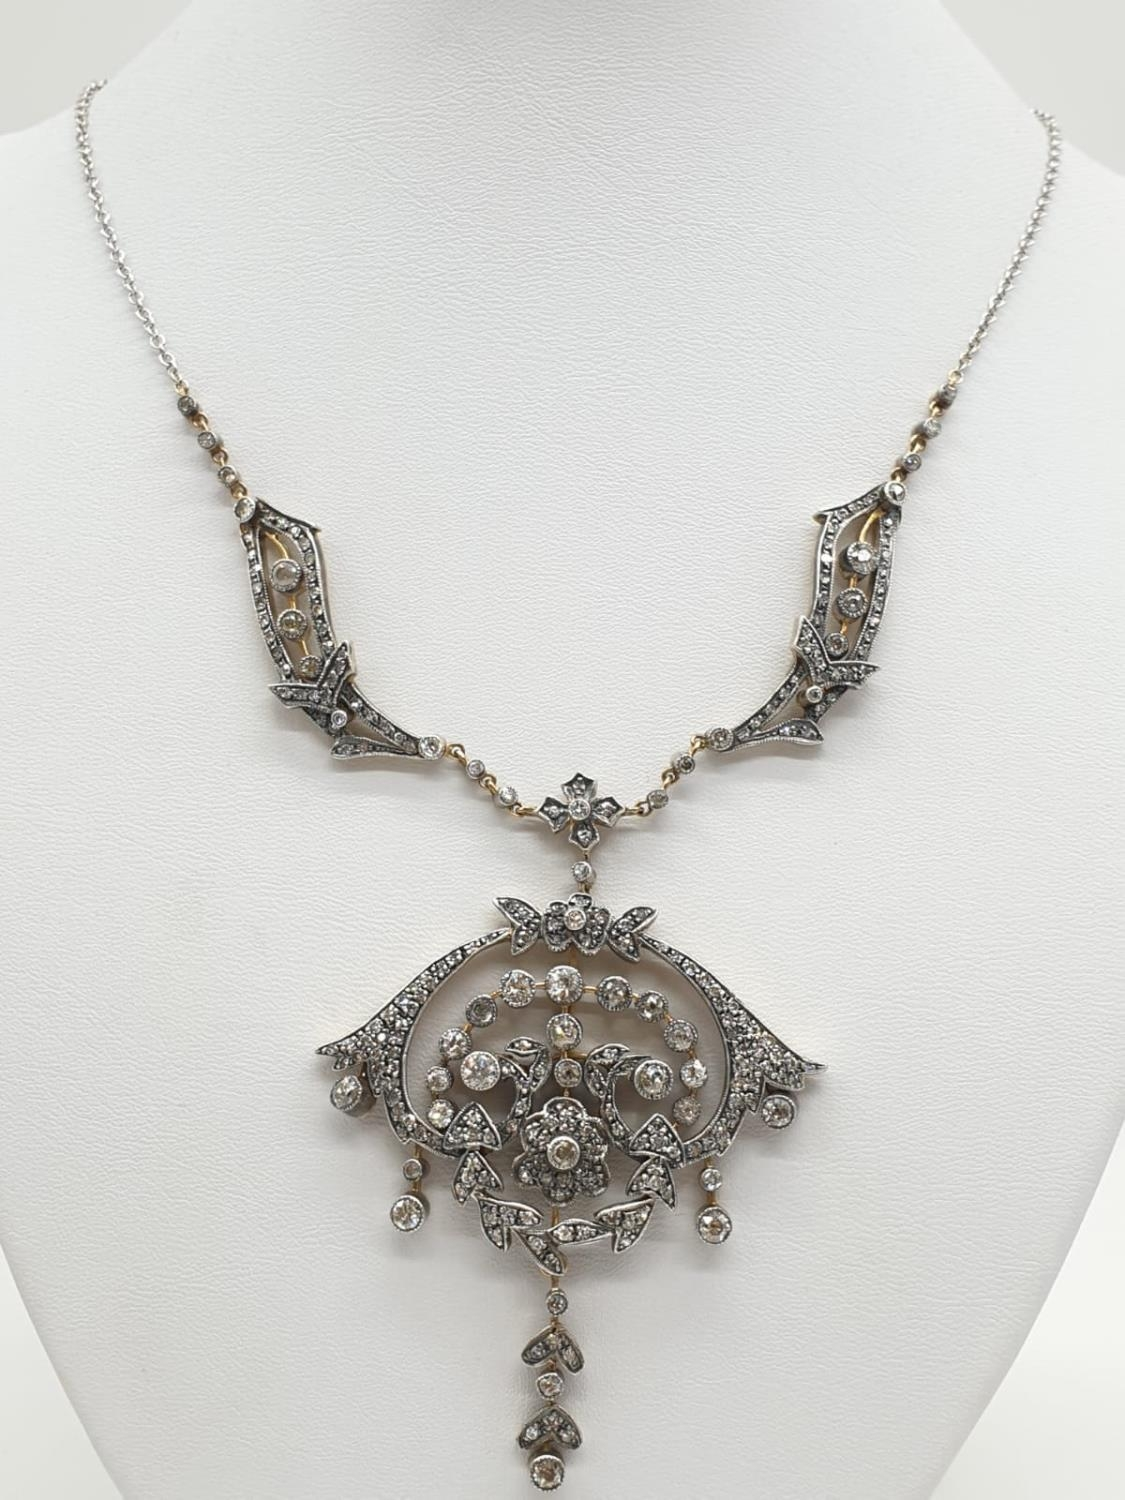 9ct Gold and Diamond Vintage PENDANT with over 3 ct of Diamonds. 42.4g 40cm length. - Image 2 of 6